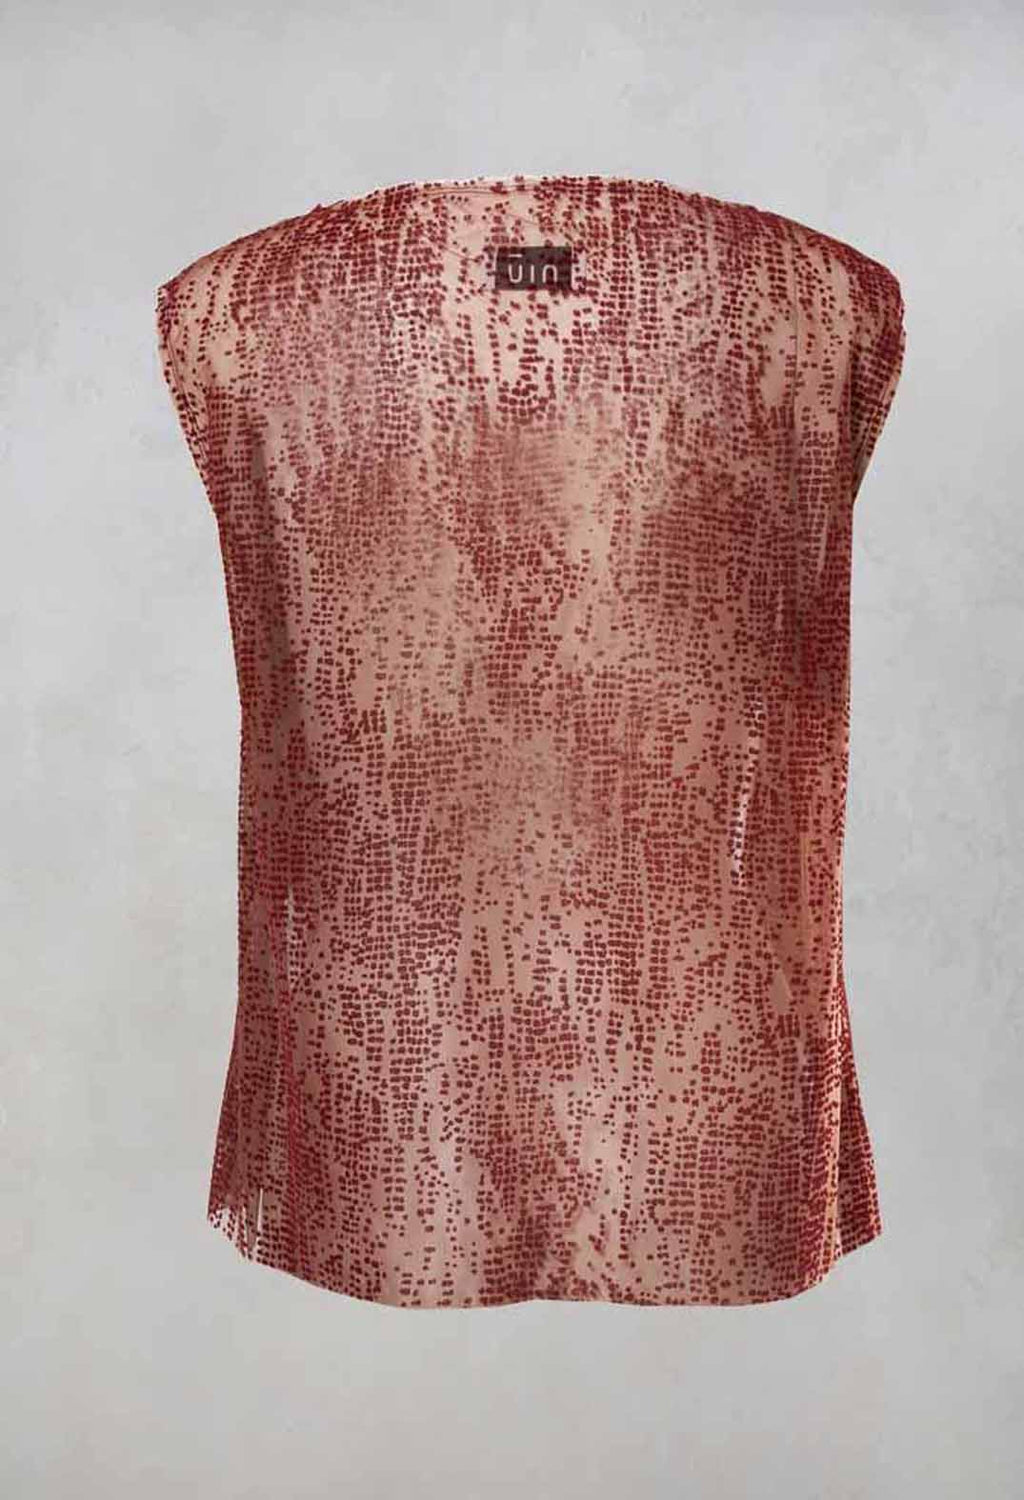 Netted Sleeveless Top in Red